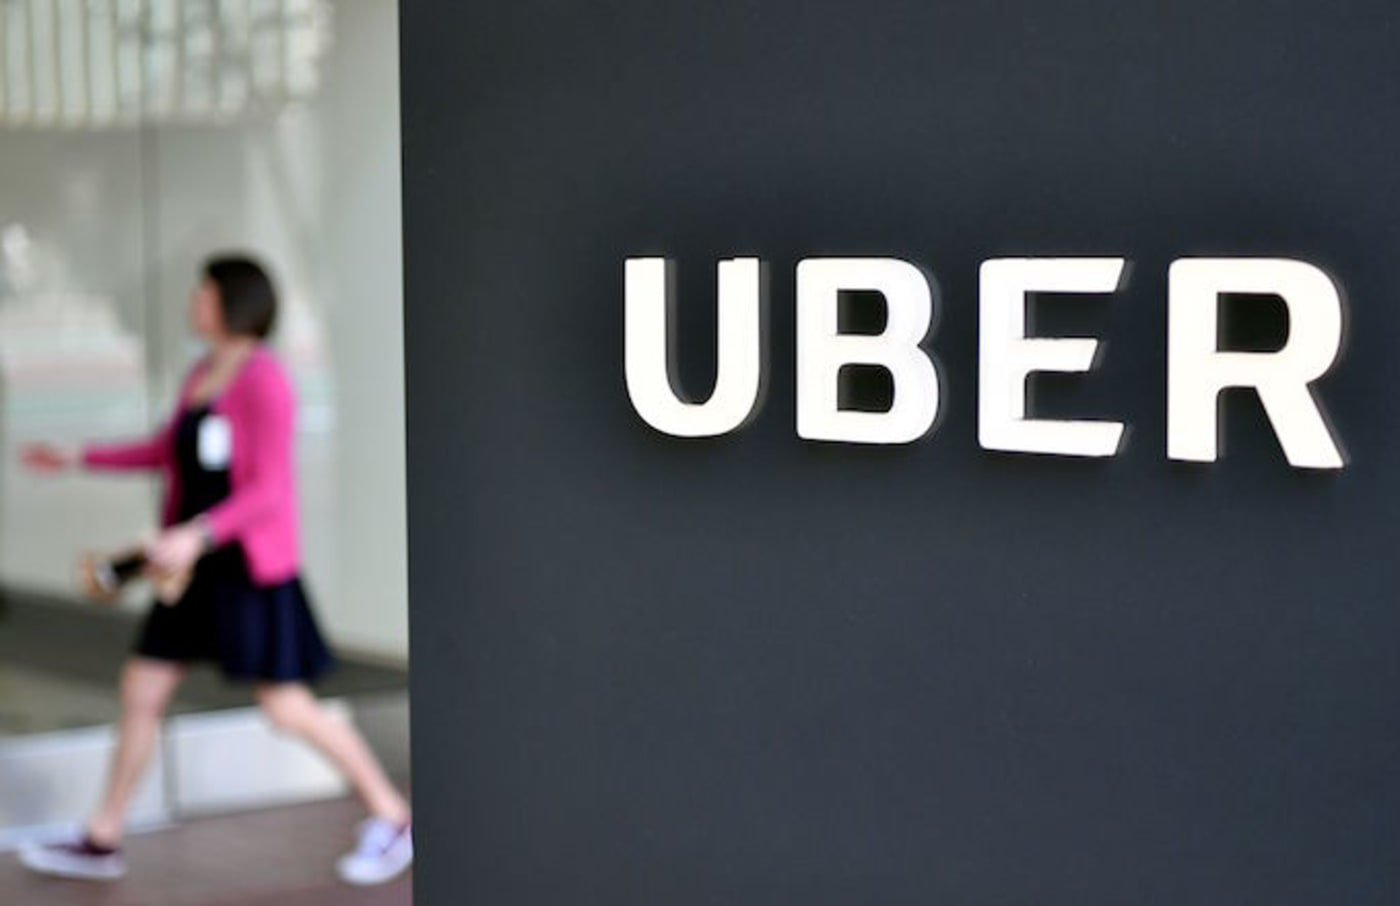 A woman walks into the Uber Corporate Headquarters building in San Francisco, California.